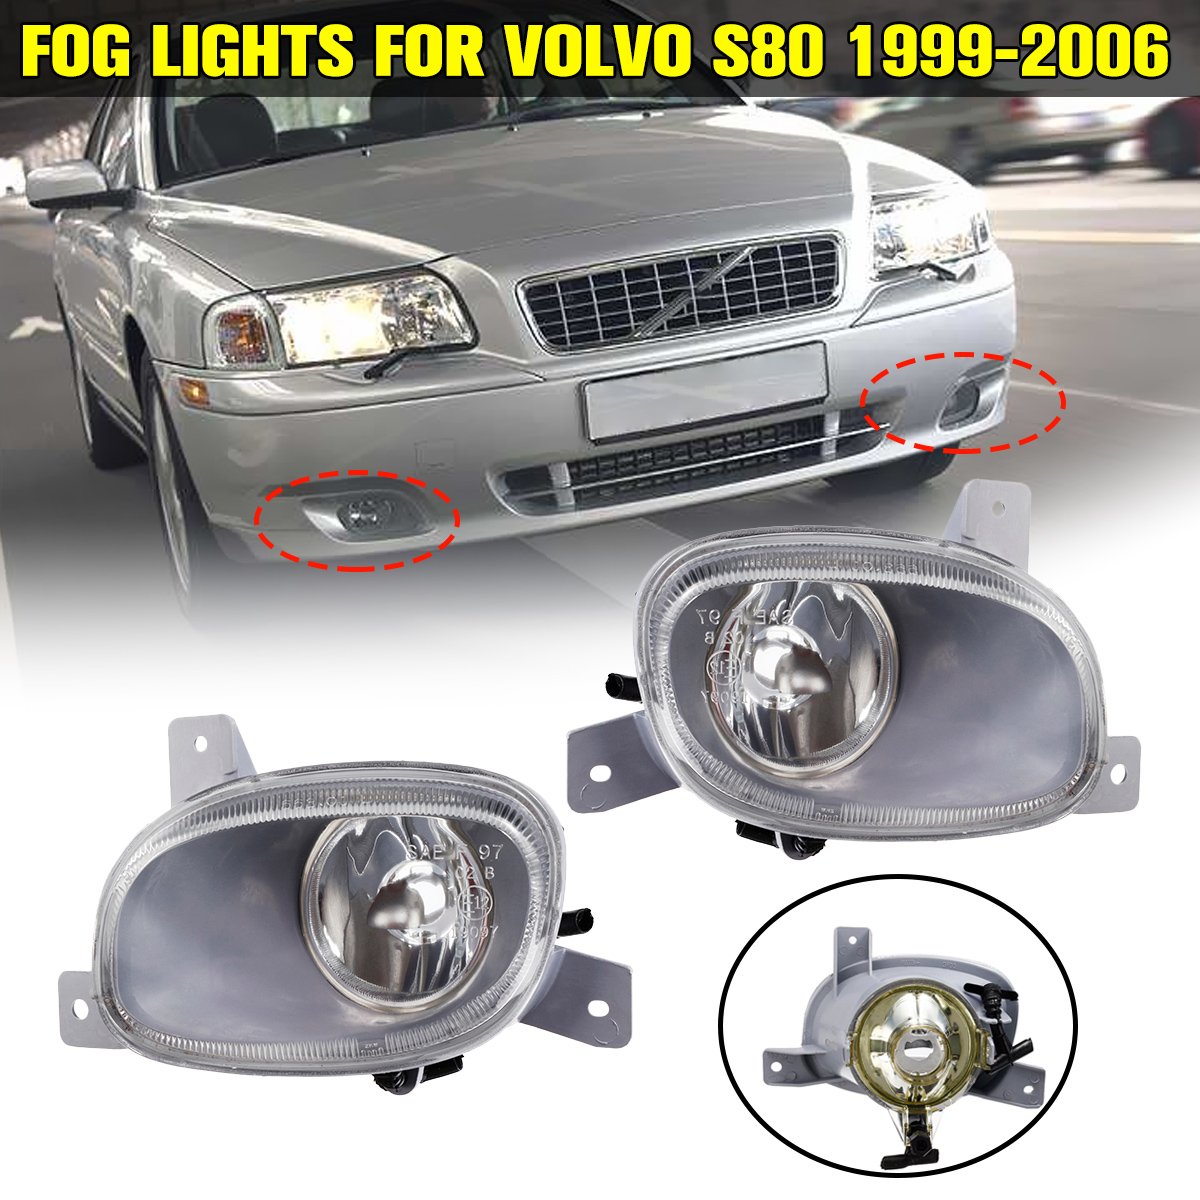 2x Front Bumper Fog Lights With No Bulbs Pair For Volvo S80 1999 2000 2001 2002 2003 2004 2005 2006 Car Clear Lens Accessories